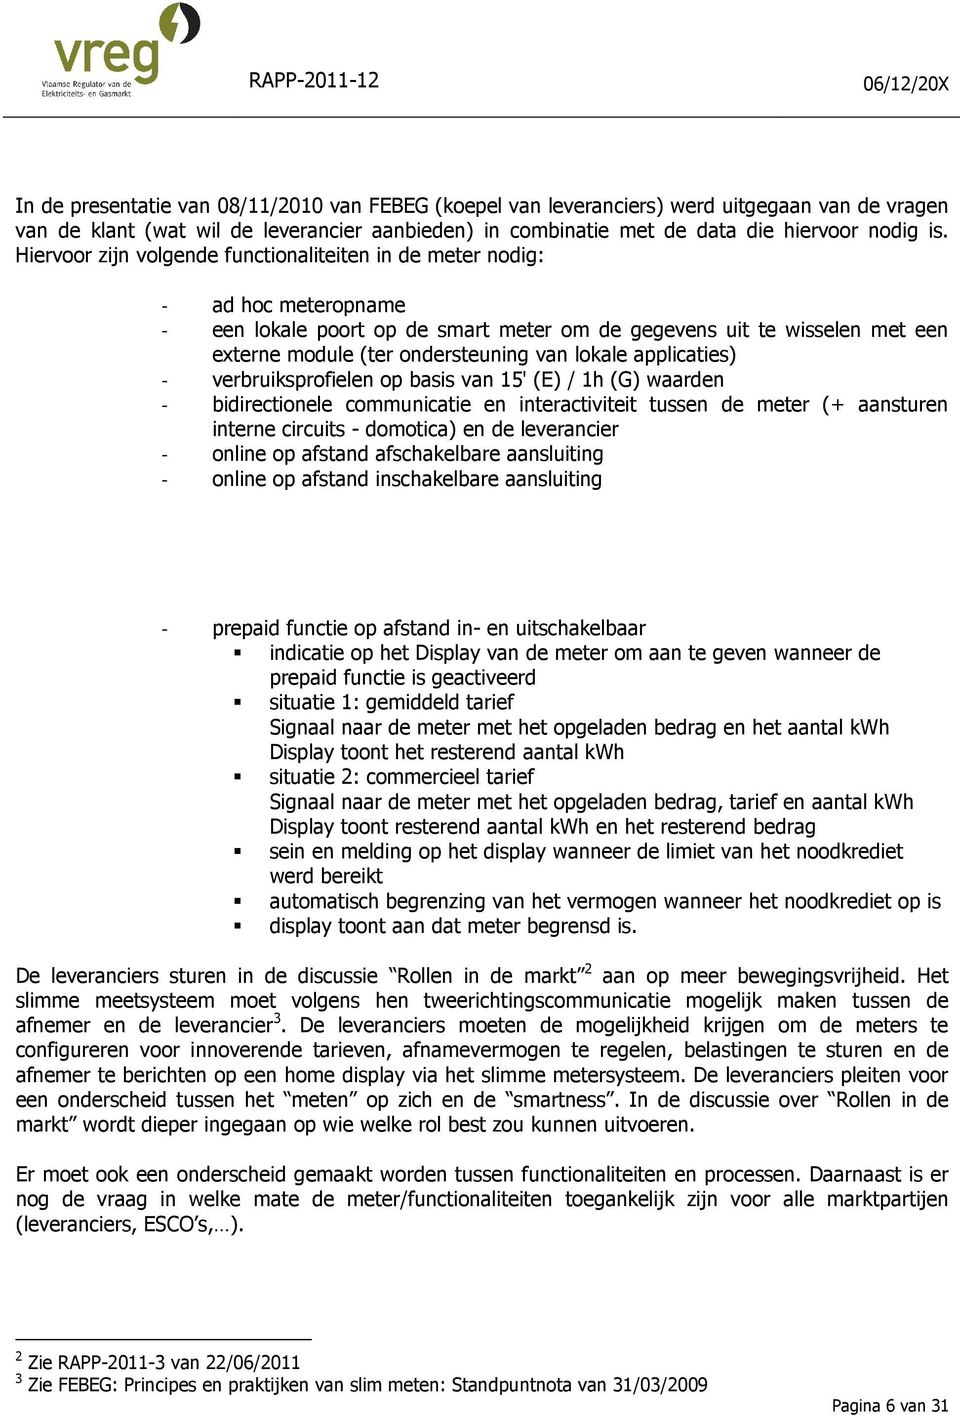 lokale applicaties) - verbruiksprofielen op basis van 15' (E) / 1h (G) waarden - bidirectionele communicatie en interactiviteit tussen de meter (+ aansturen interne circuits - domotica) en de